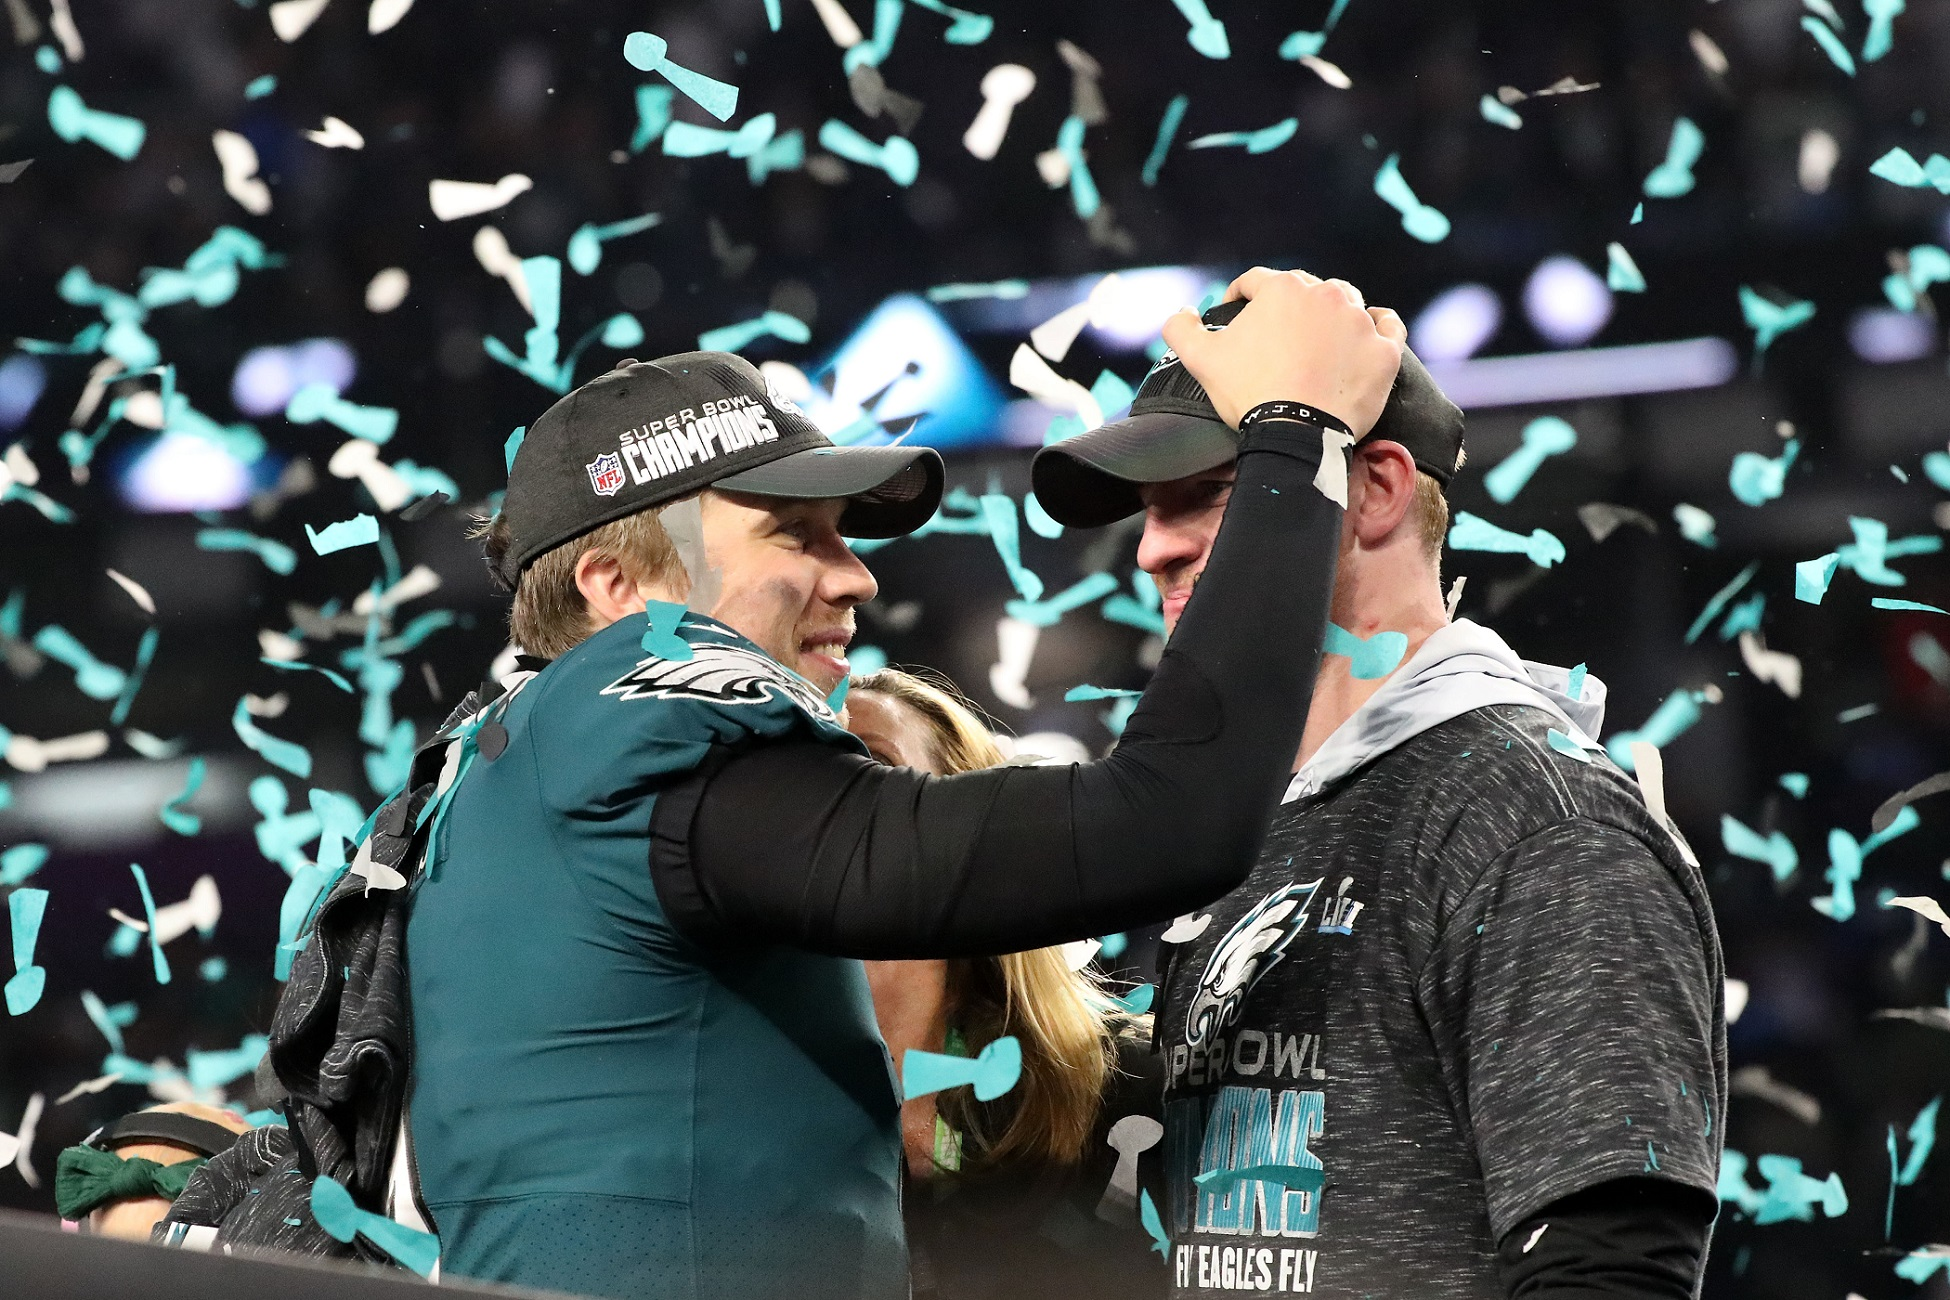 Matthew McConaughey Honored Super Bowl MVP Nick Foles in an Awesome Way